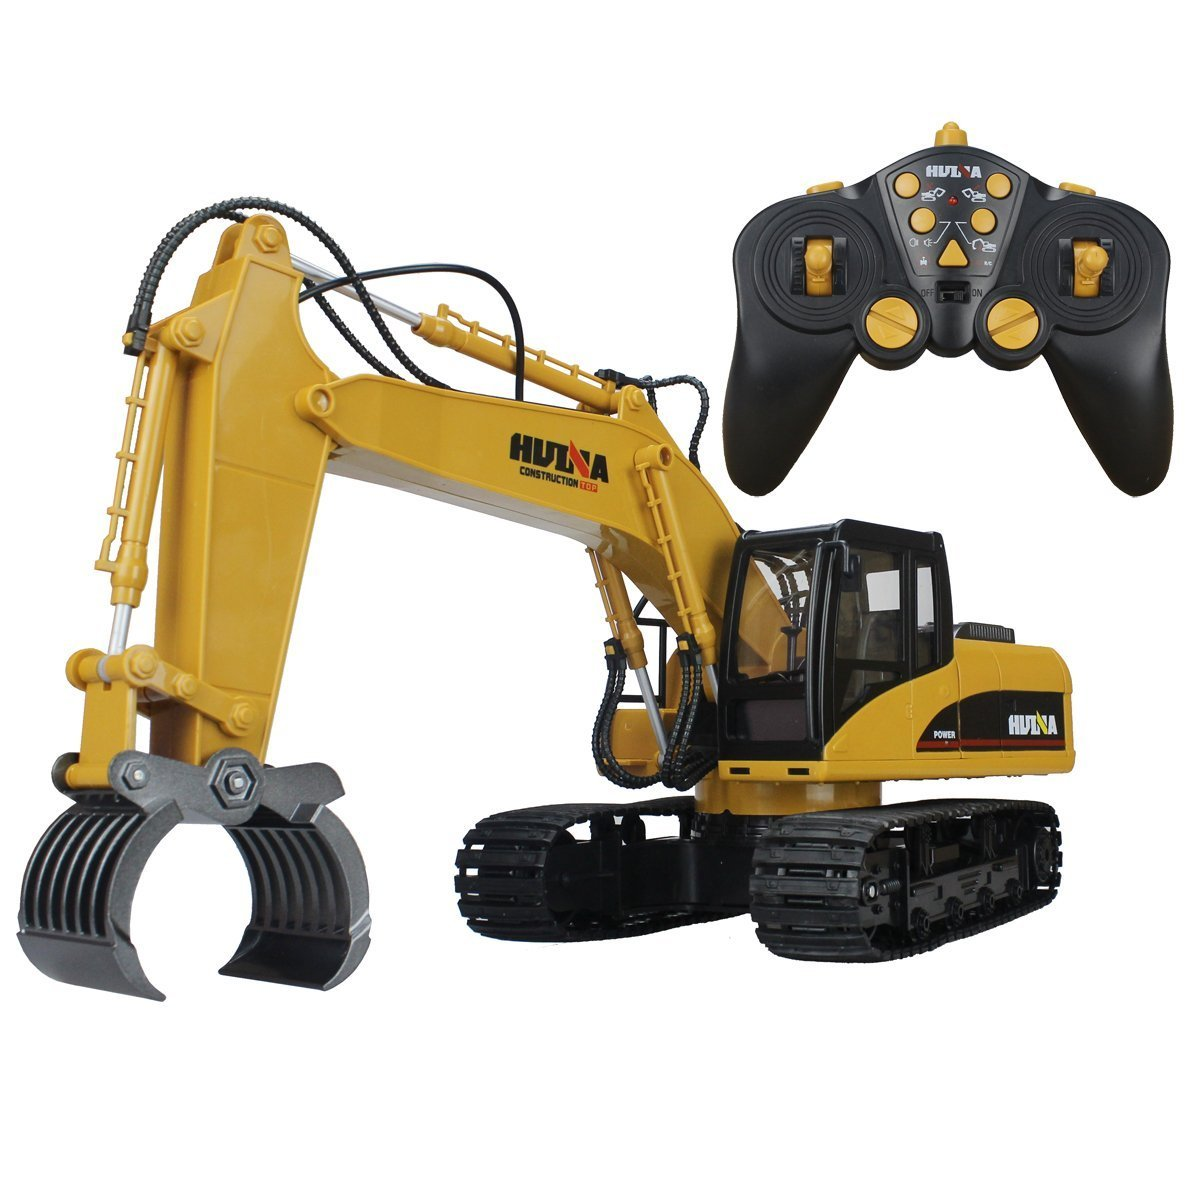 Big-Daddy Super Powerful Full Functional DIE-CAST 15 Channel Professional Remote Control Excavator Tractor Toy With Lights & Sound KidsVoiceToys